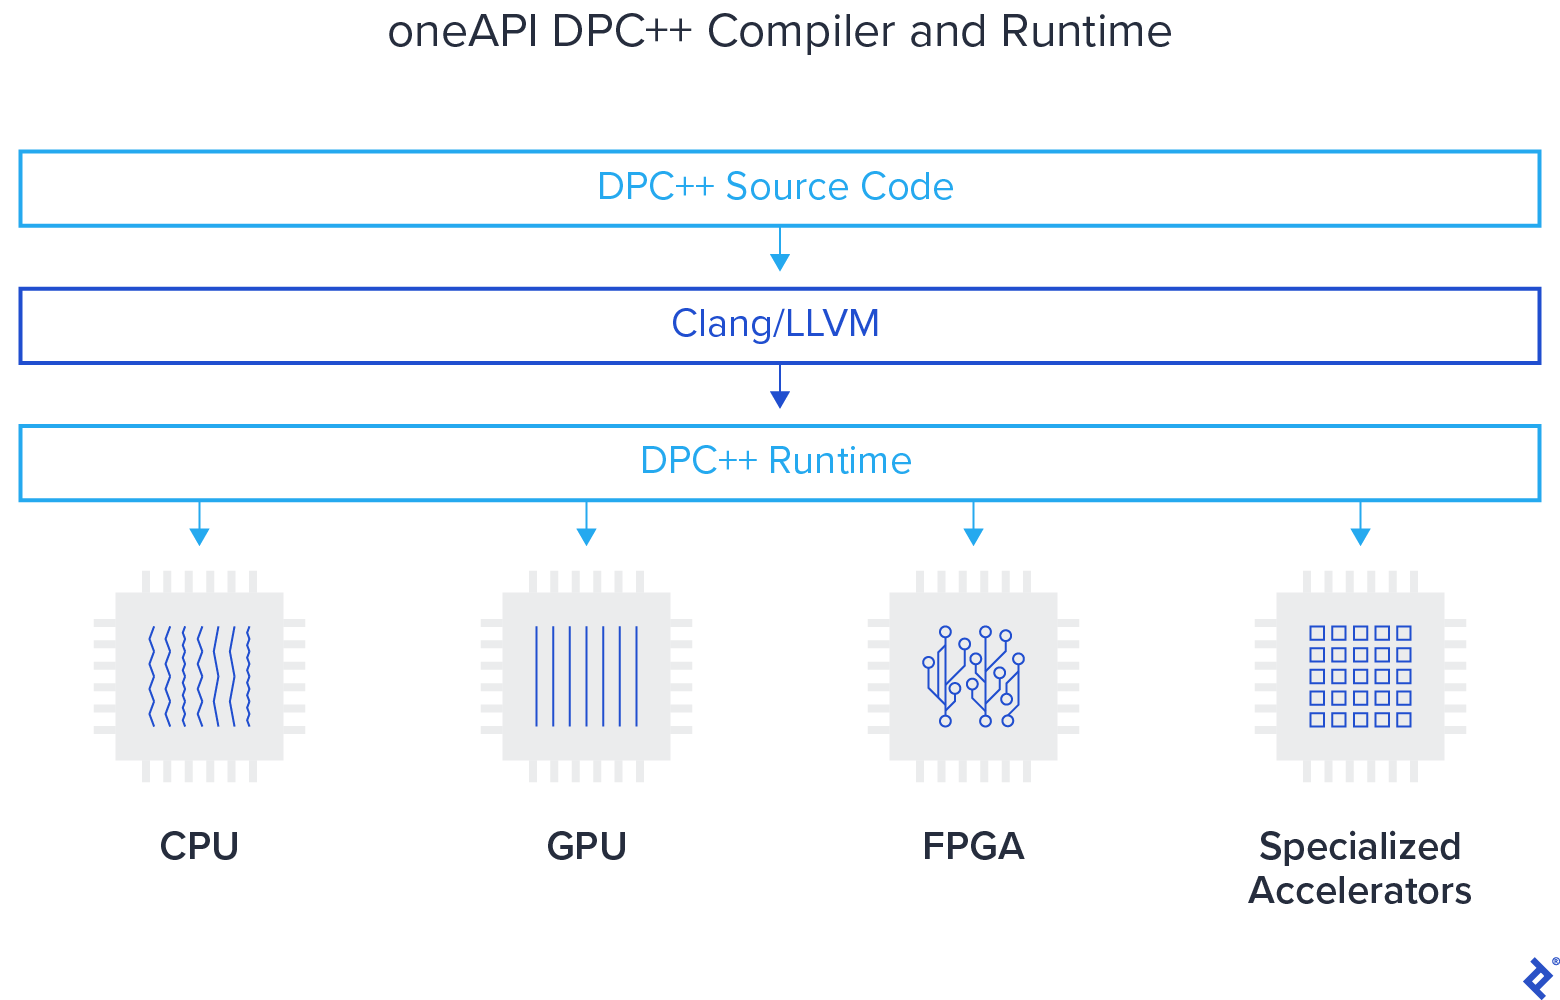 oneAPI DPC++ compiler and runtime